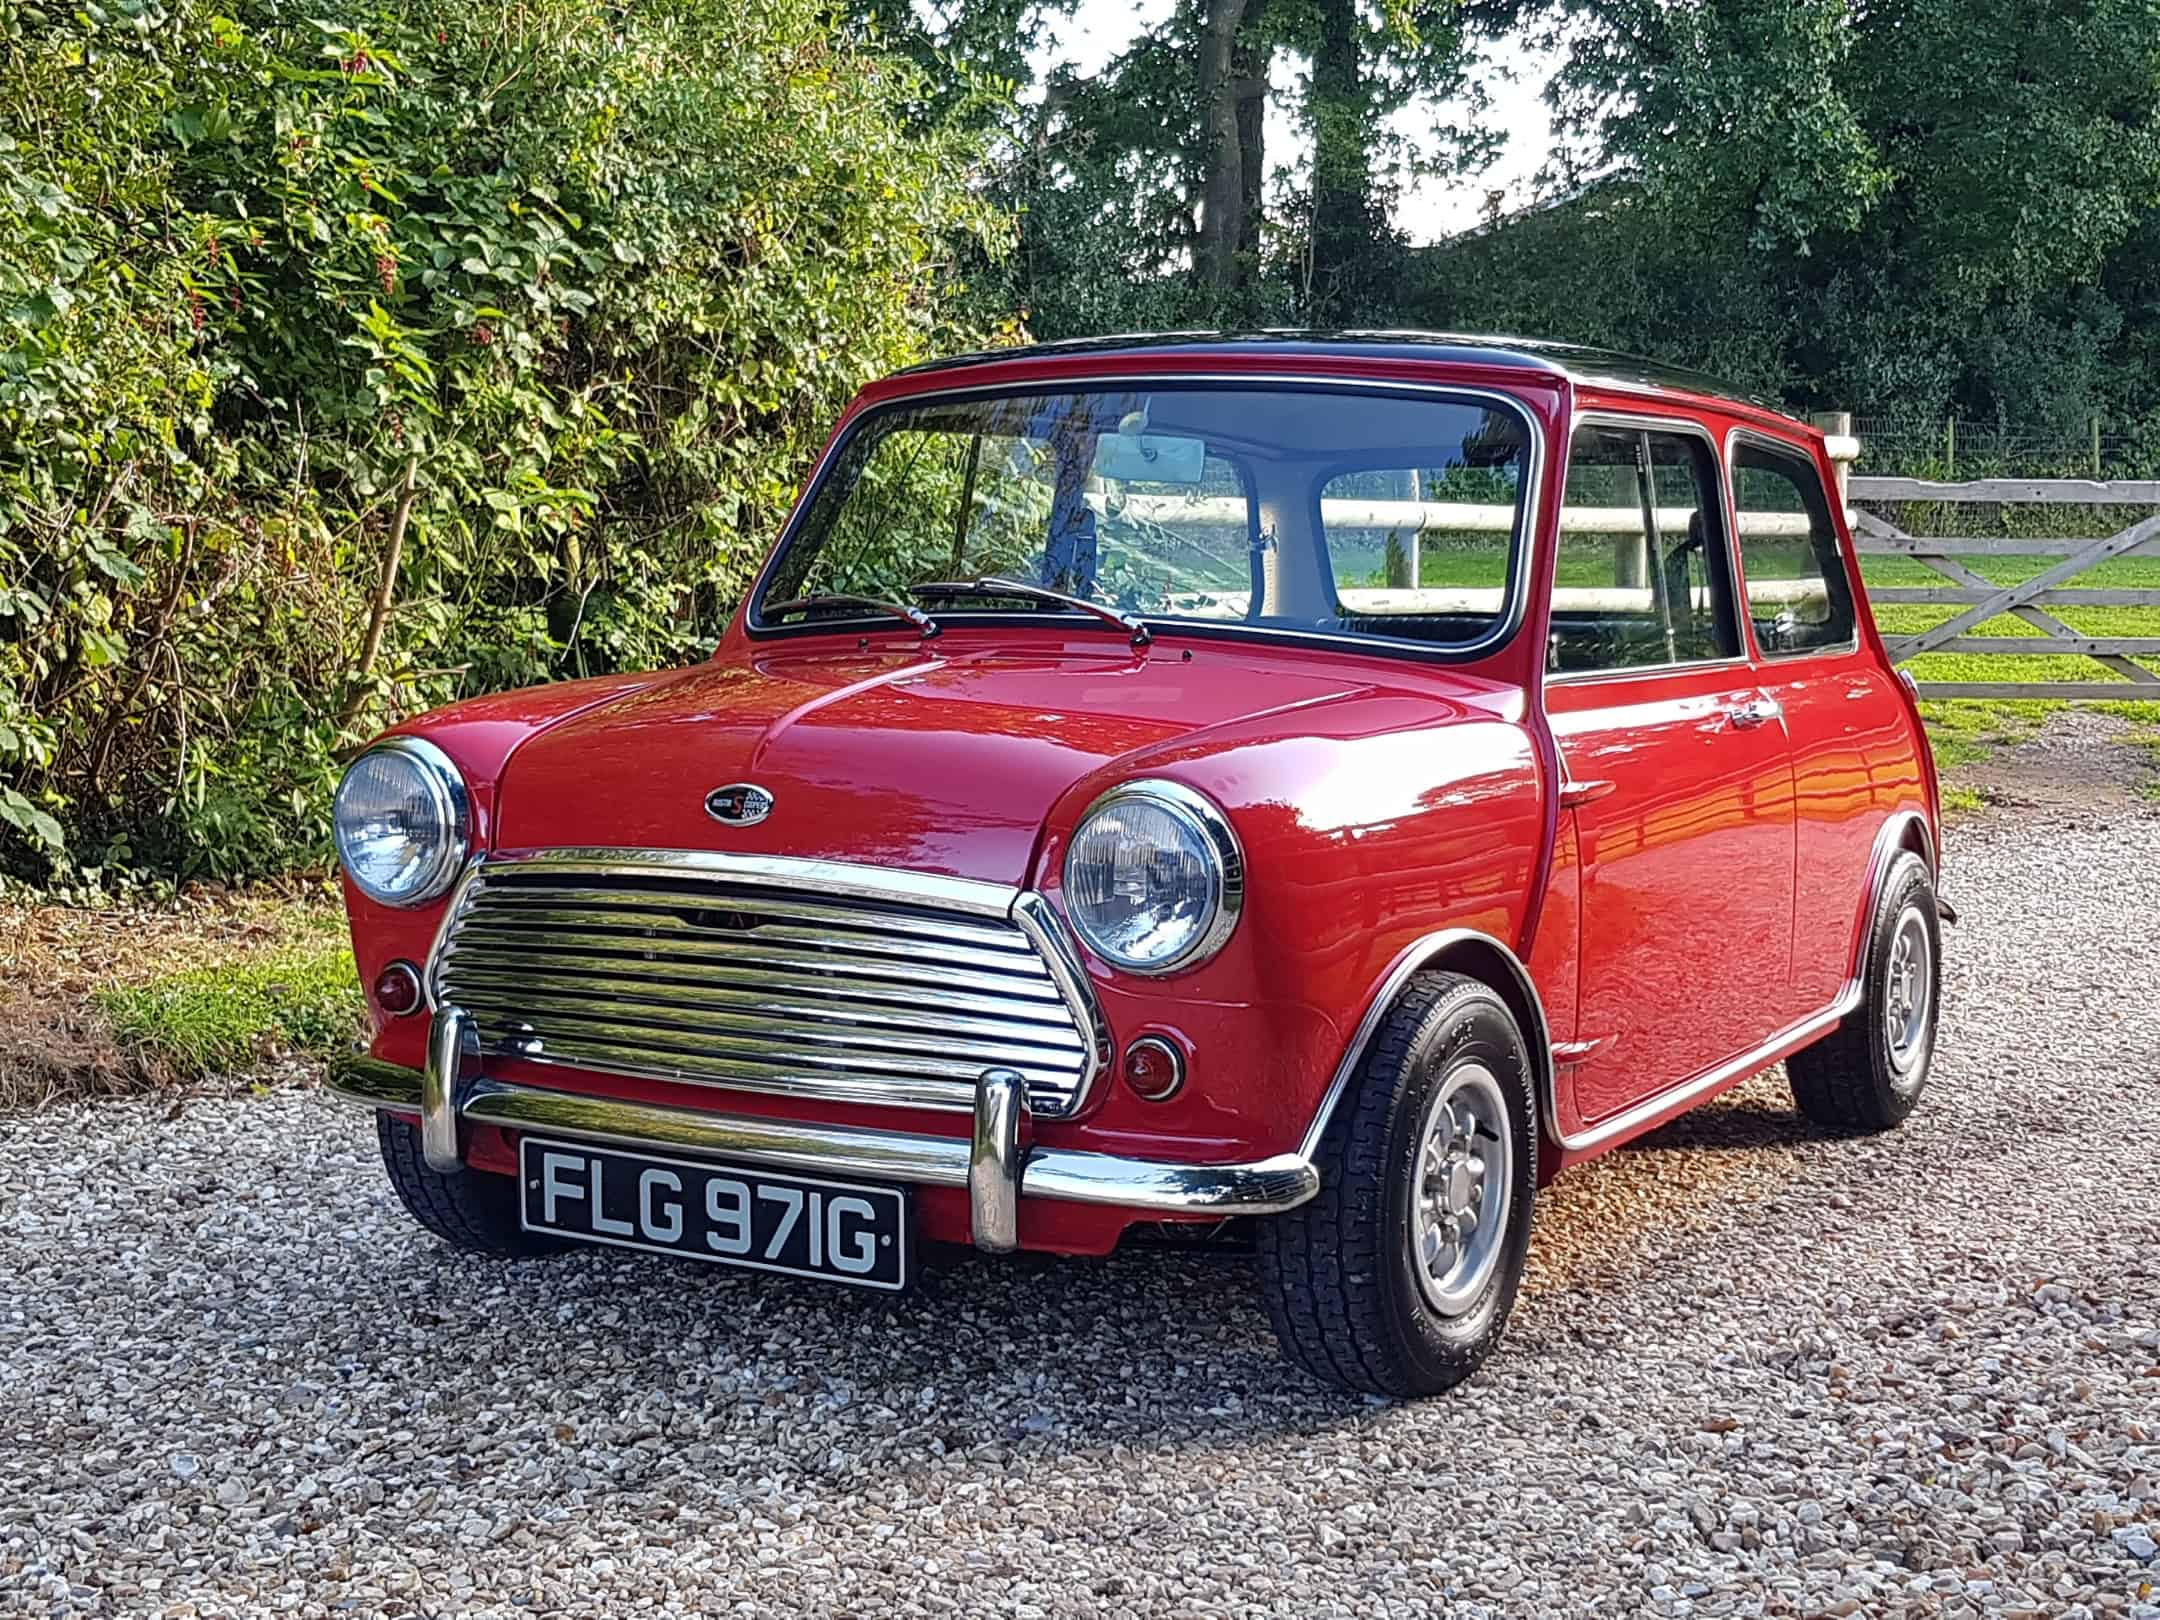 ** NOW SOLD ** Fantastic 1968 Mk2 1300 cc Fast Road Mini.